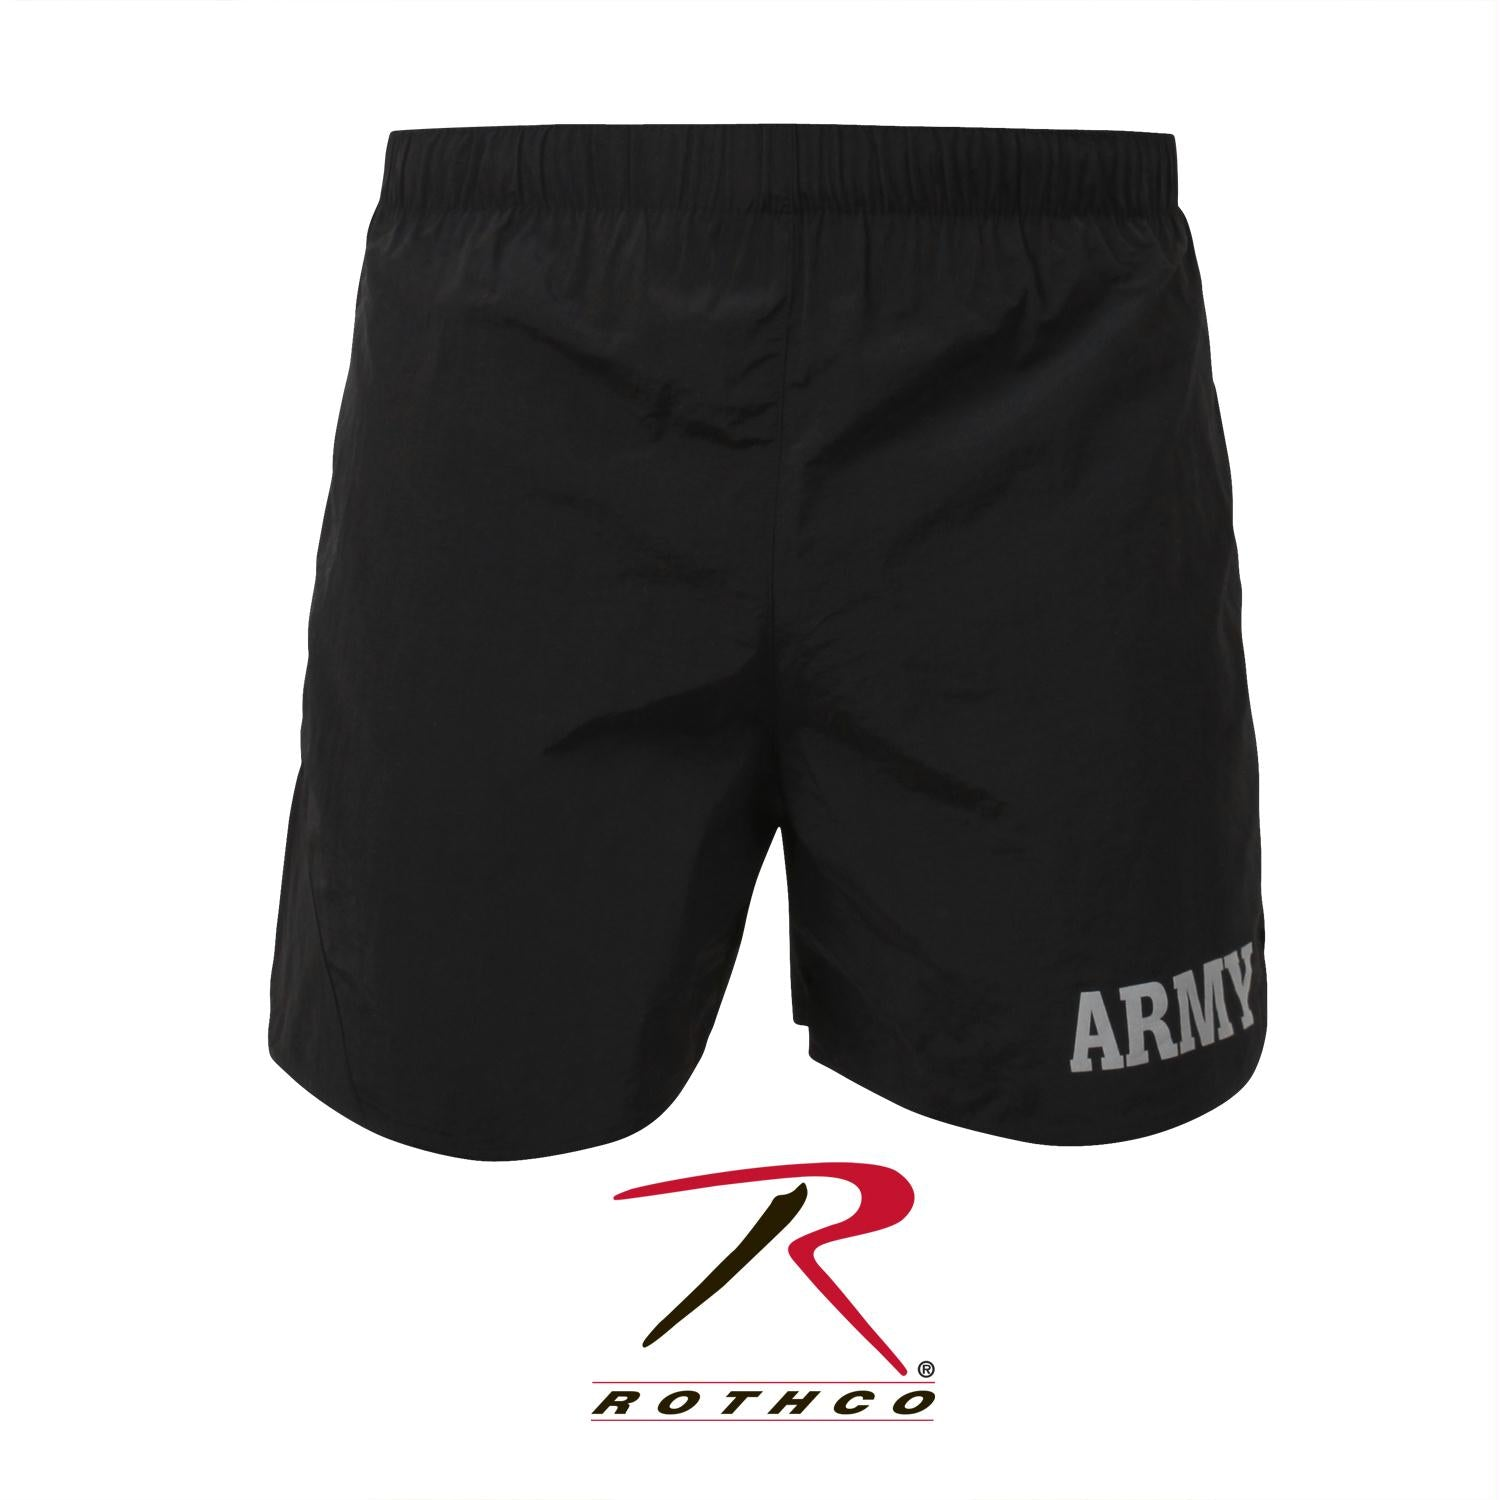 Rothco Physical Training  Shorts - Army / M